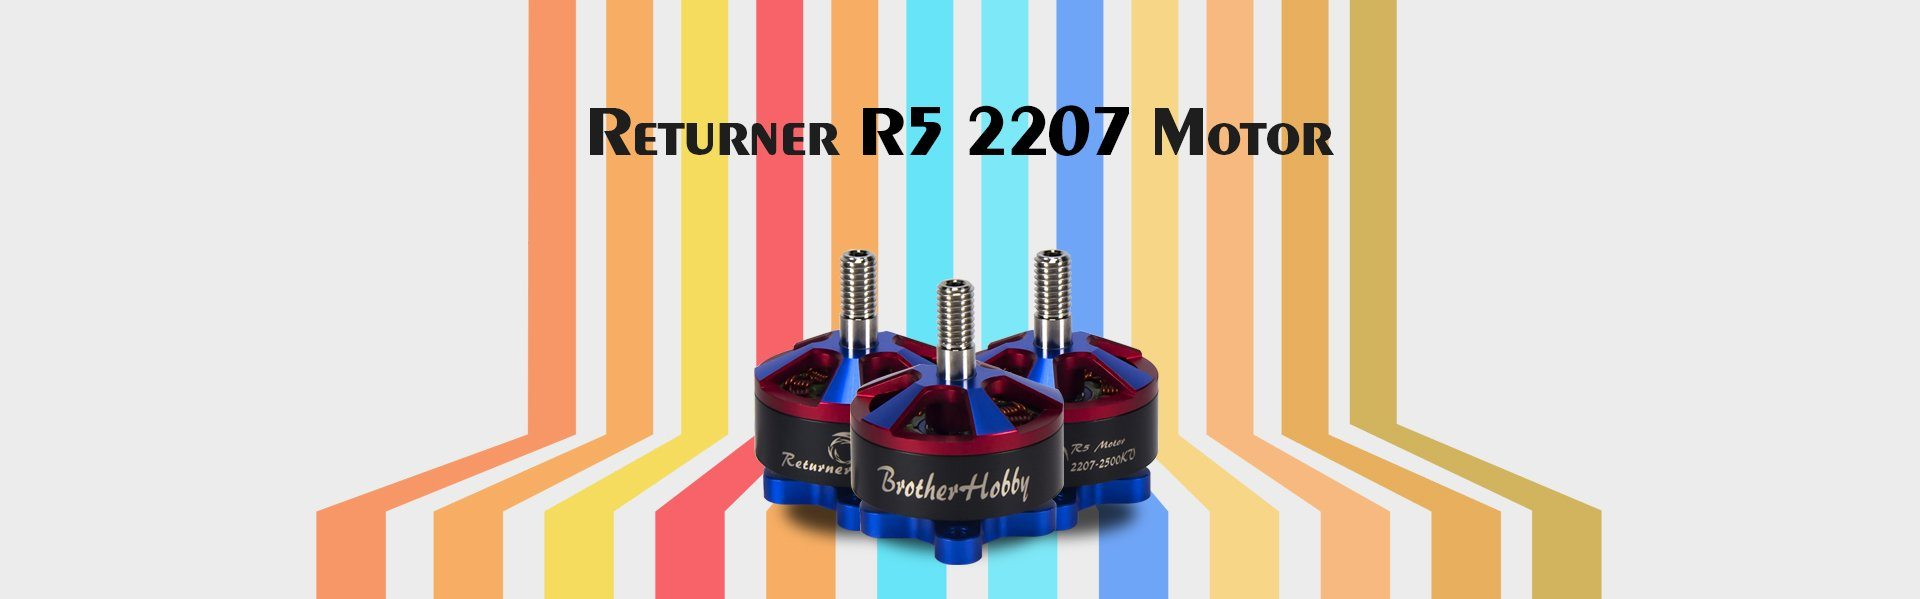 BrotherHobby Returner R5 2207 Brushless Motor Brotherhobby